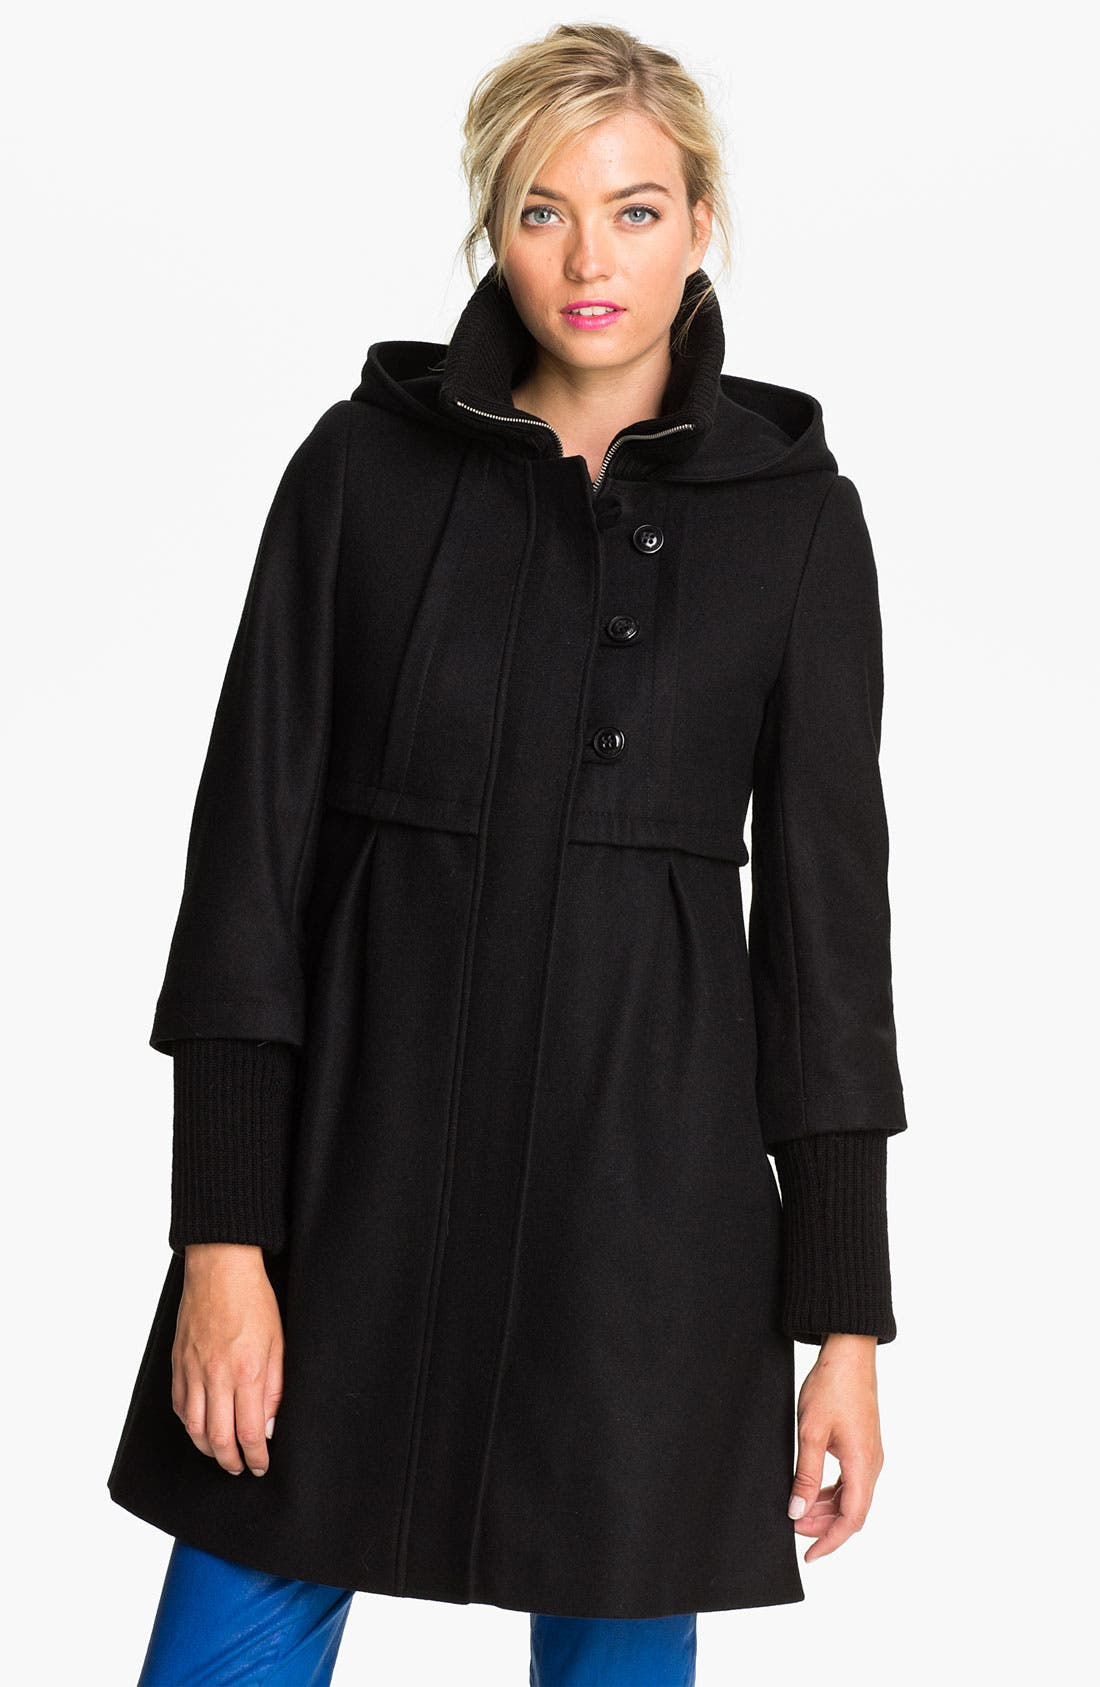 Alternate Image 1 Selected - DKNY 'Bethany' Knit Inset Wool Blend Coat